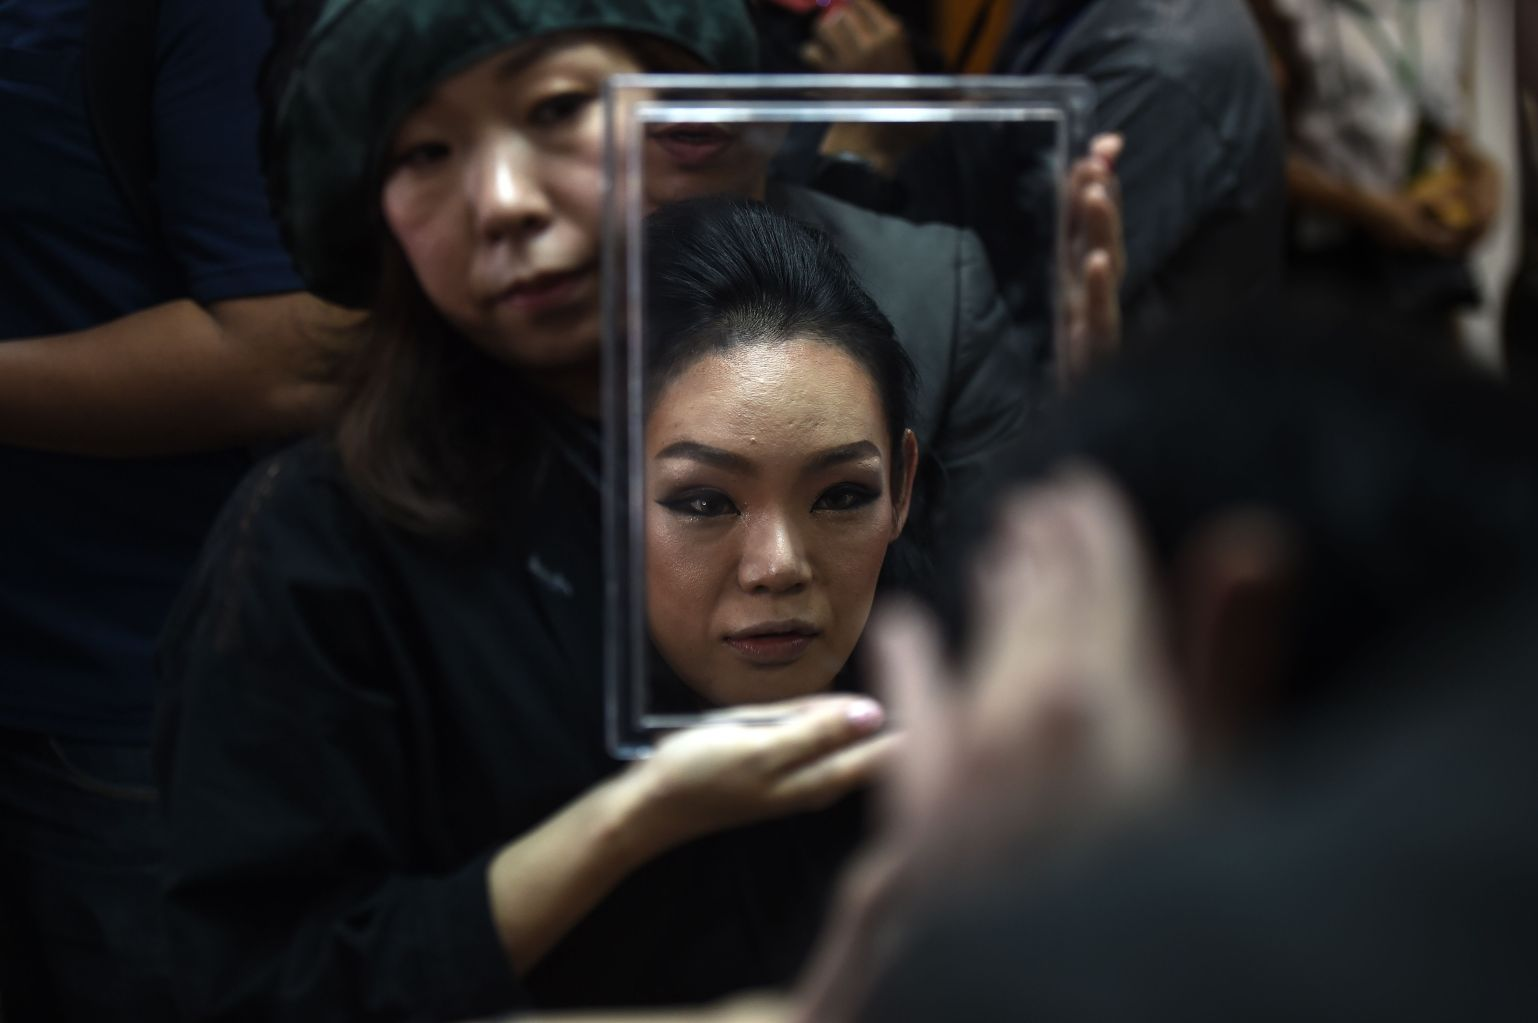 TOPSHOT - Yuko of Japan gets ready in the dressing room before the final round of the Miss International Queen 2018 transgender beauty pageant in Pattaya on March 9, 2018. / AFP PHOTO / LILLIAN SUWANRUMPHA        (Photo credit should read LILLIAN SUWANRUMPHA/AFP/Getty Images)